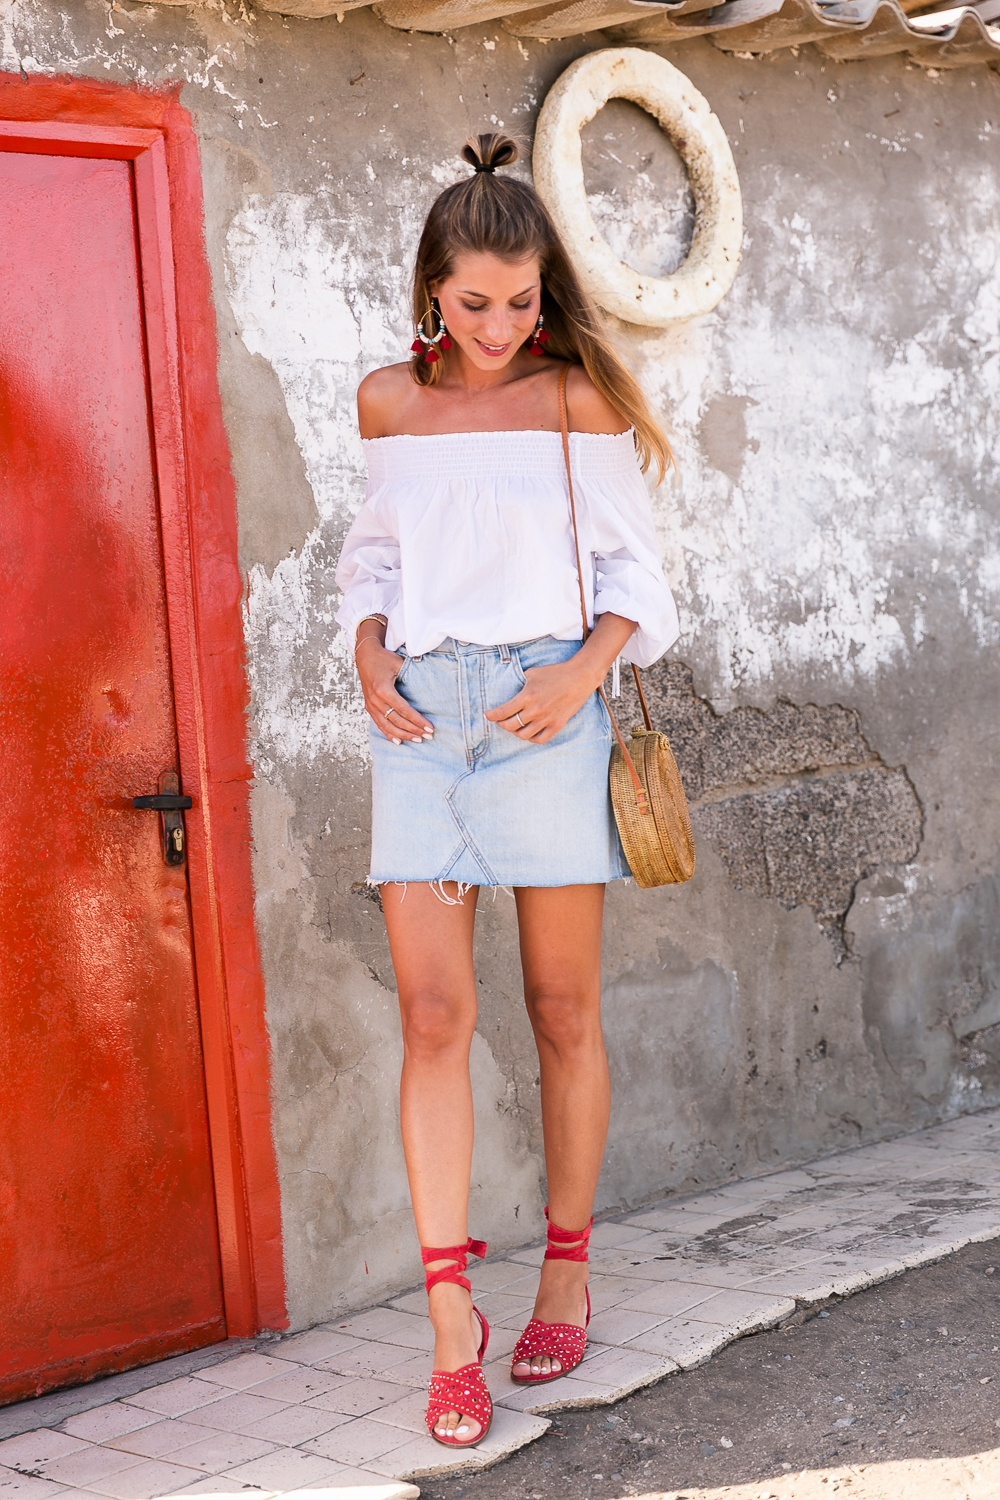 red shoes outfit jeans skirt denim off the shoulder top straw bag summerlook fashionblog